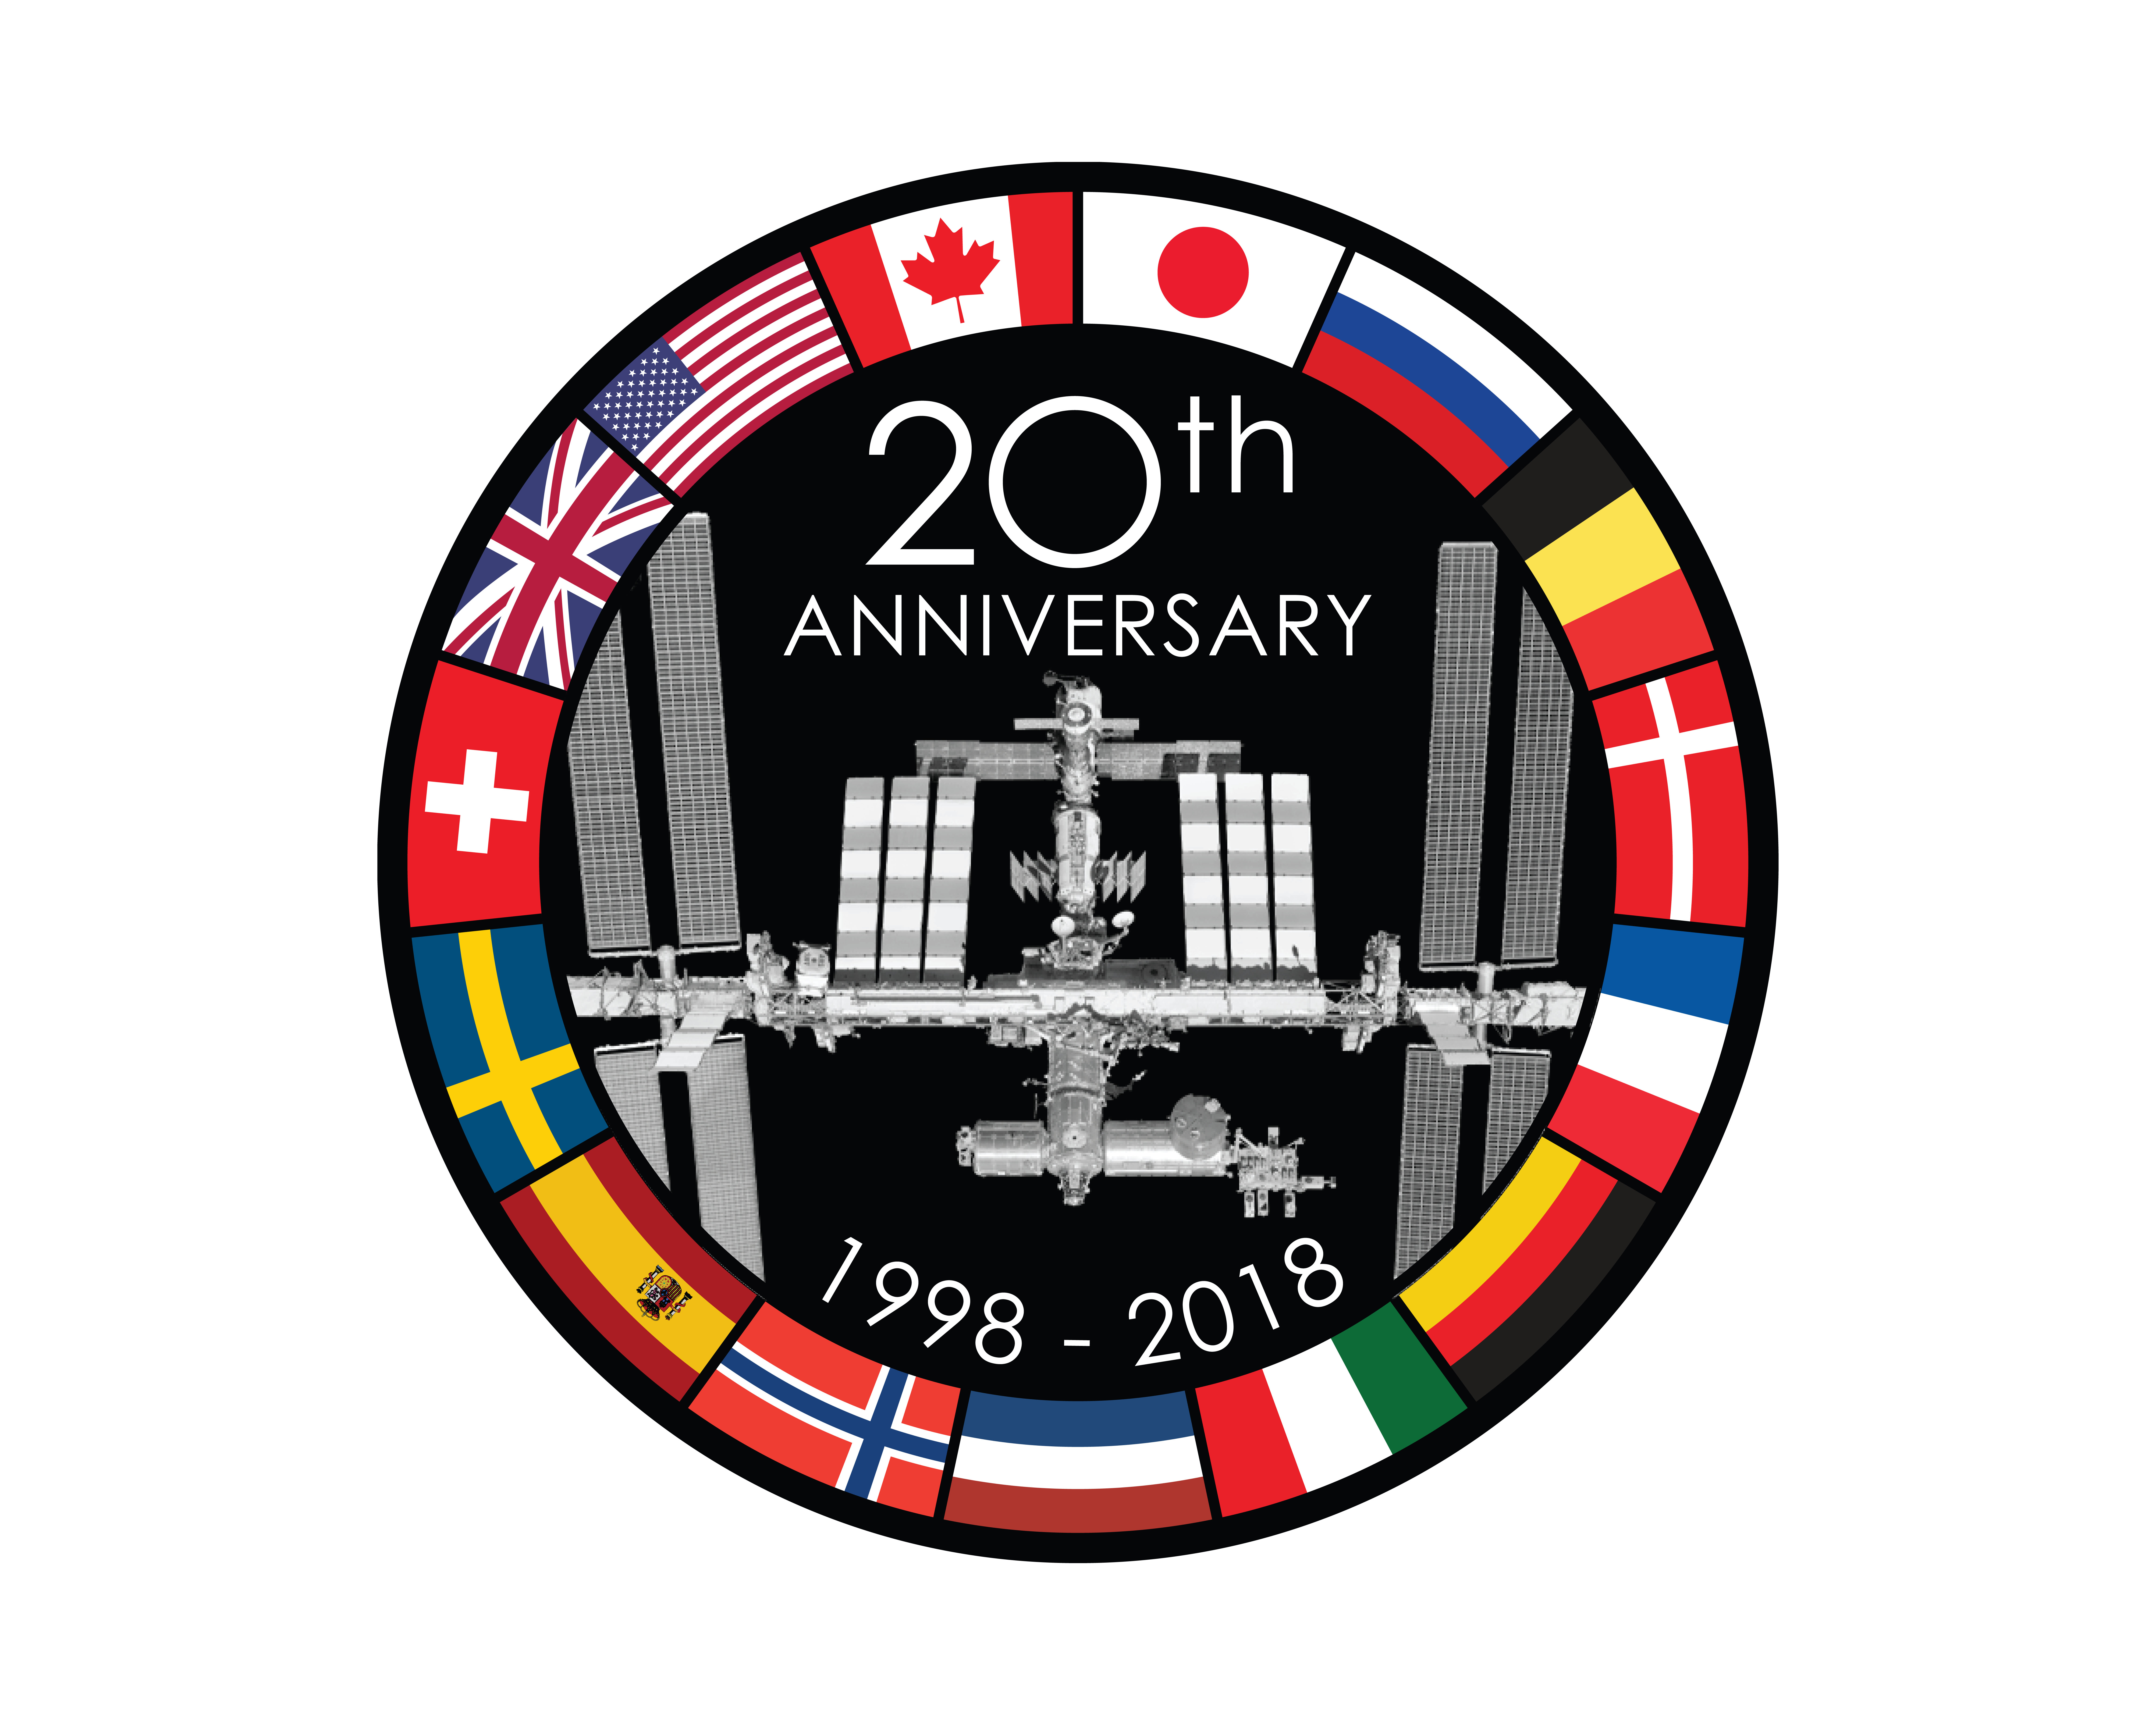 The 20th anniversary logo of the International Space Station.